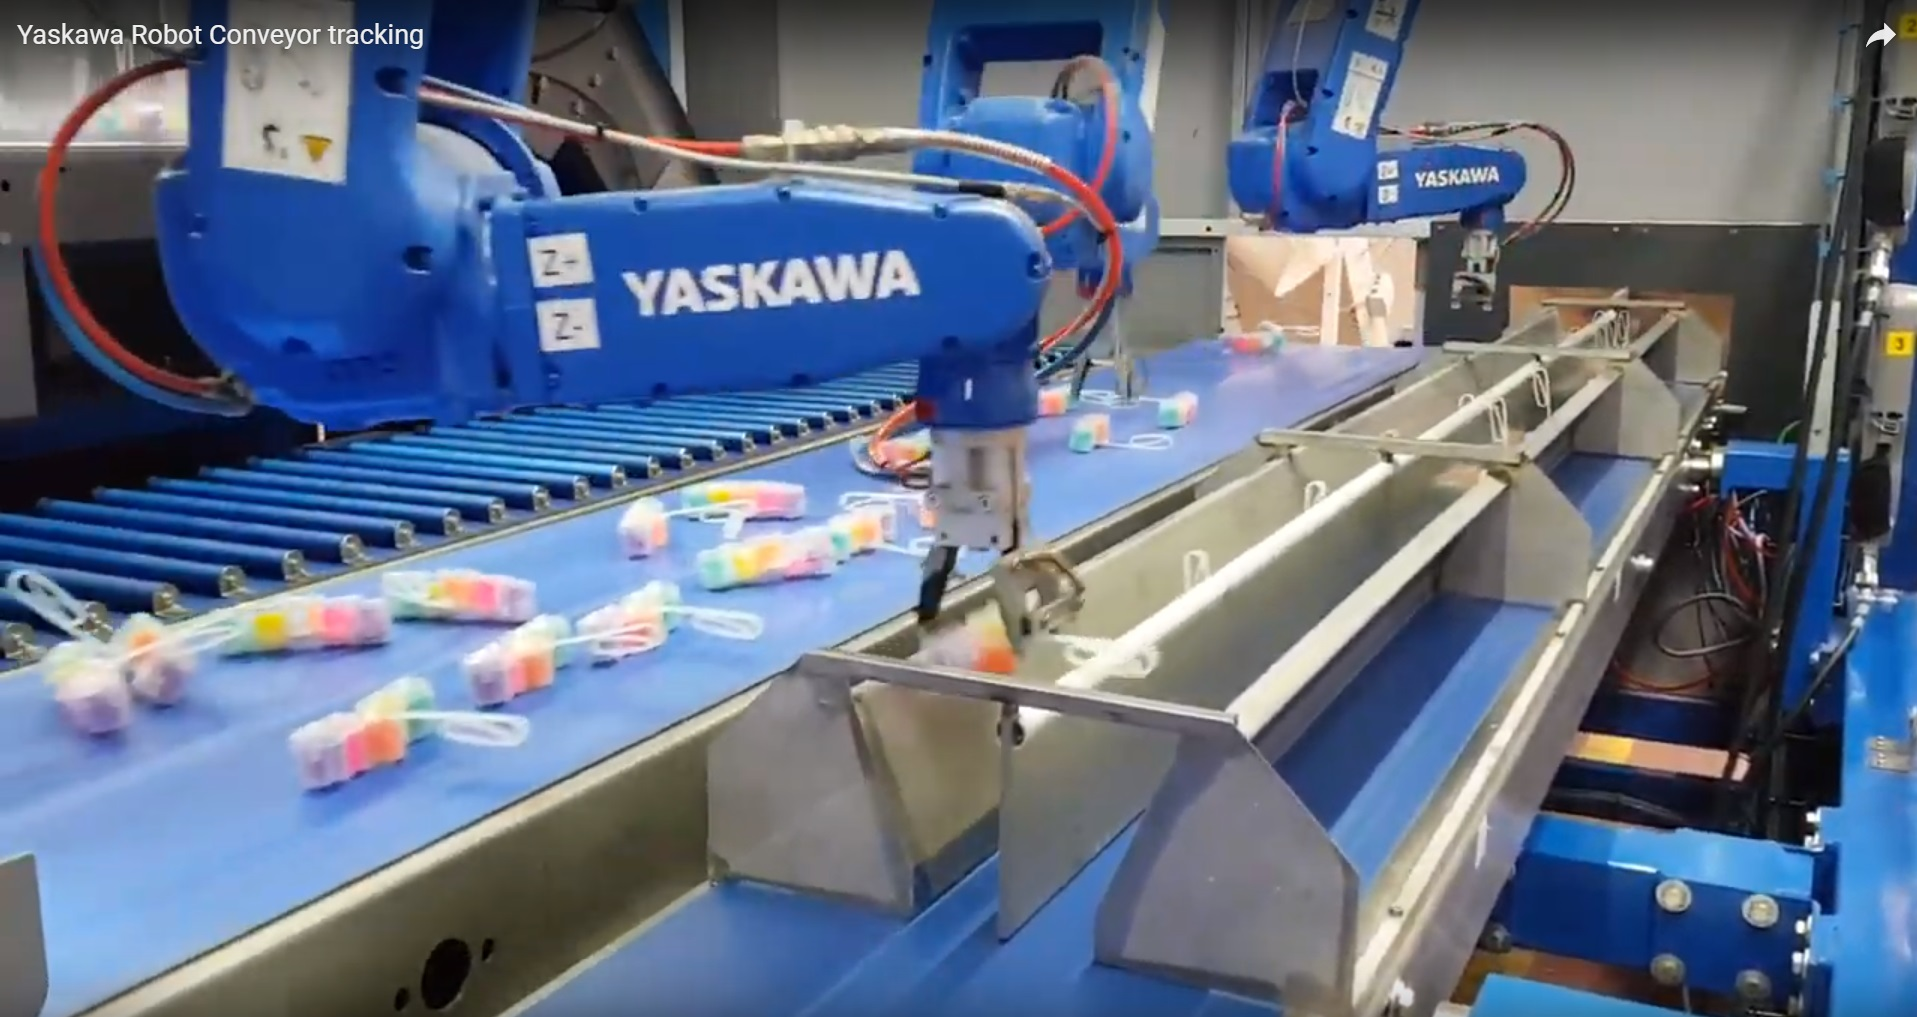 Conveyor Tracking